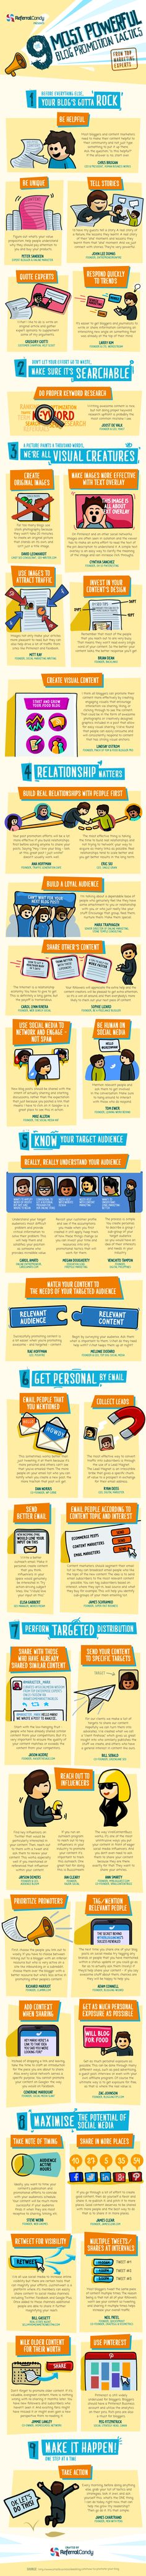 Blog Promotion Tactics #Infographic #Blogging #Marketing